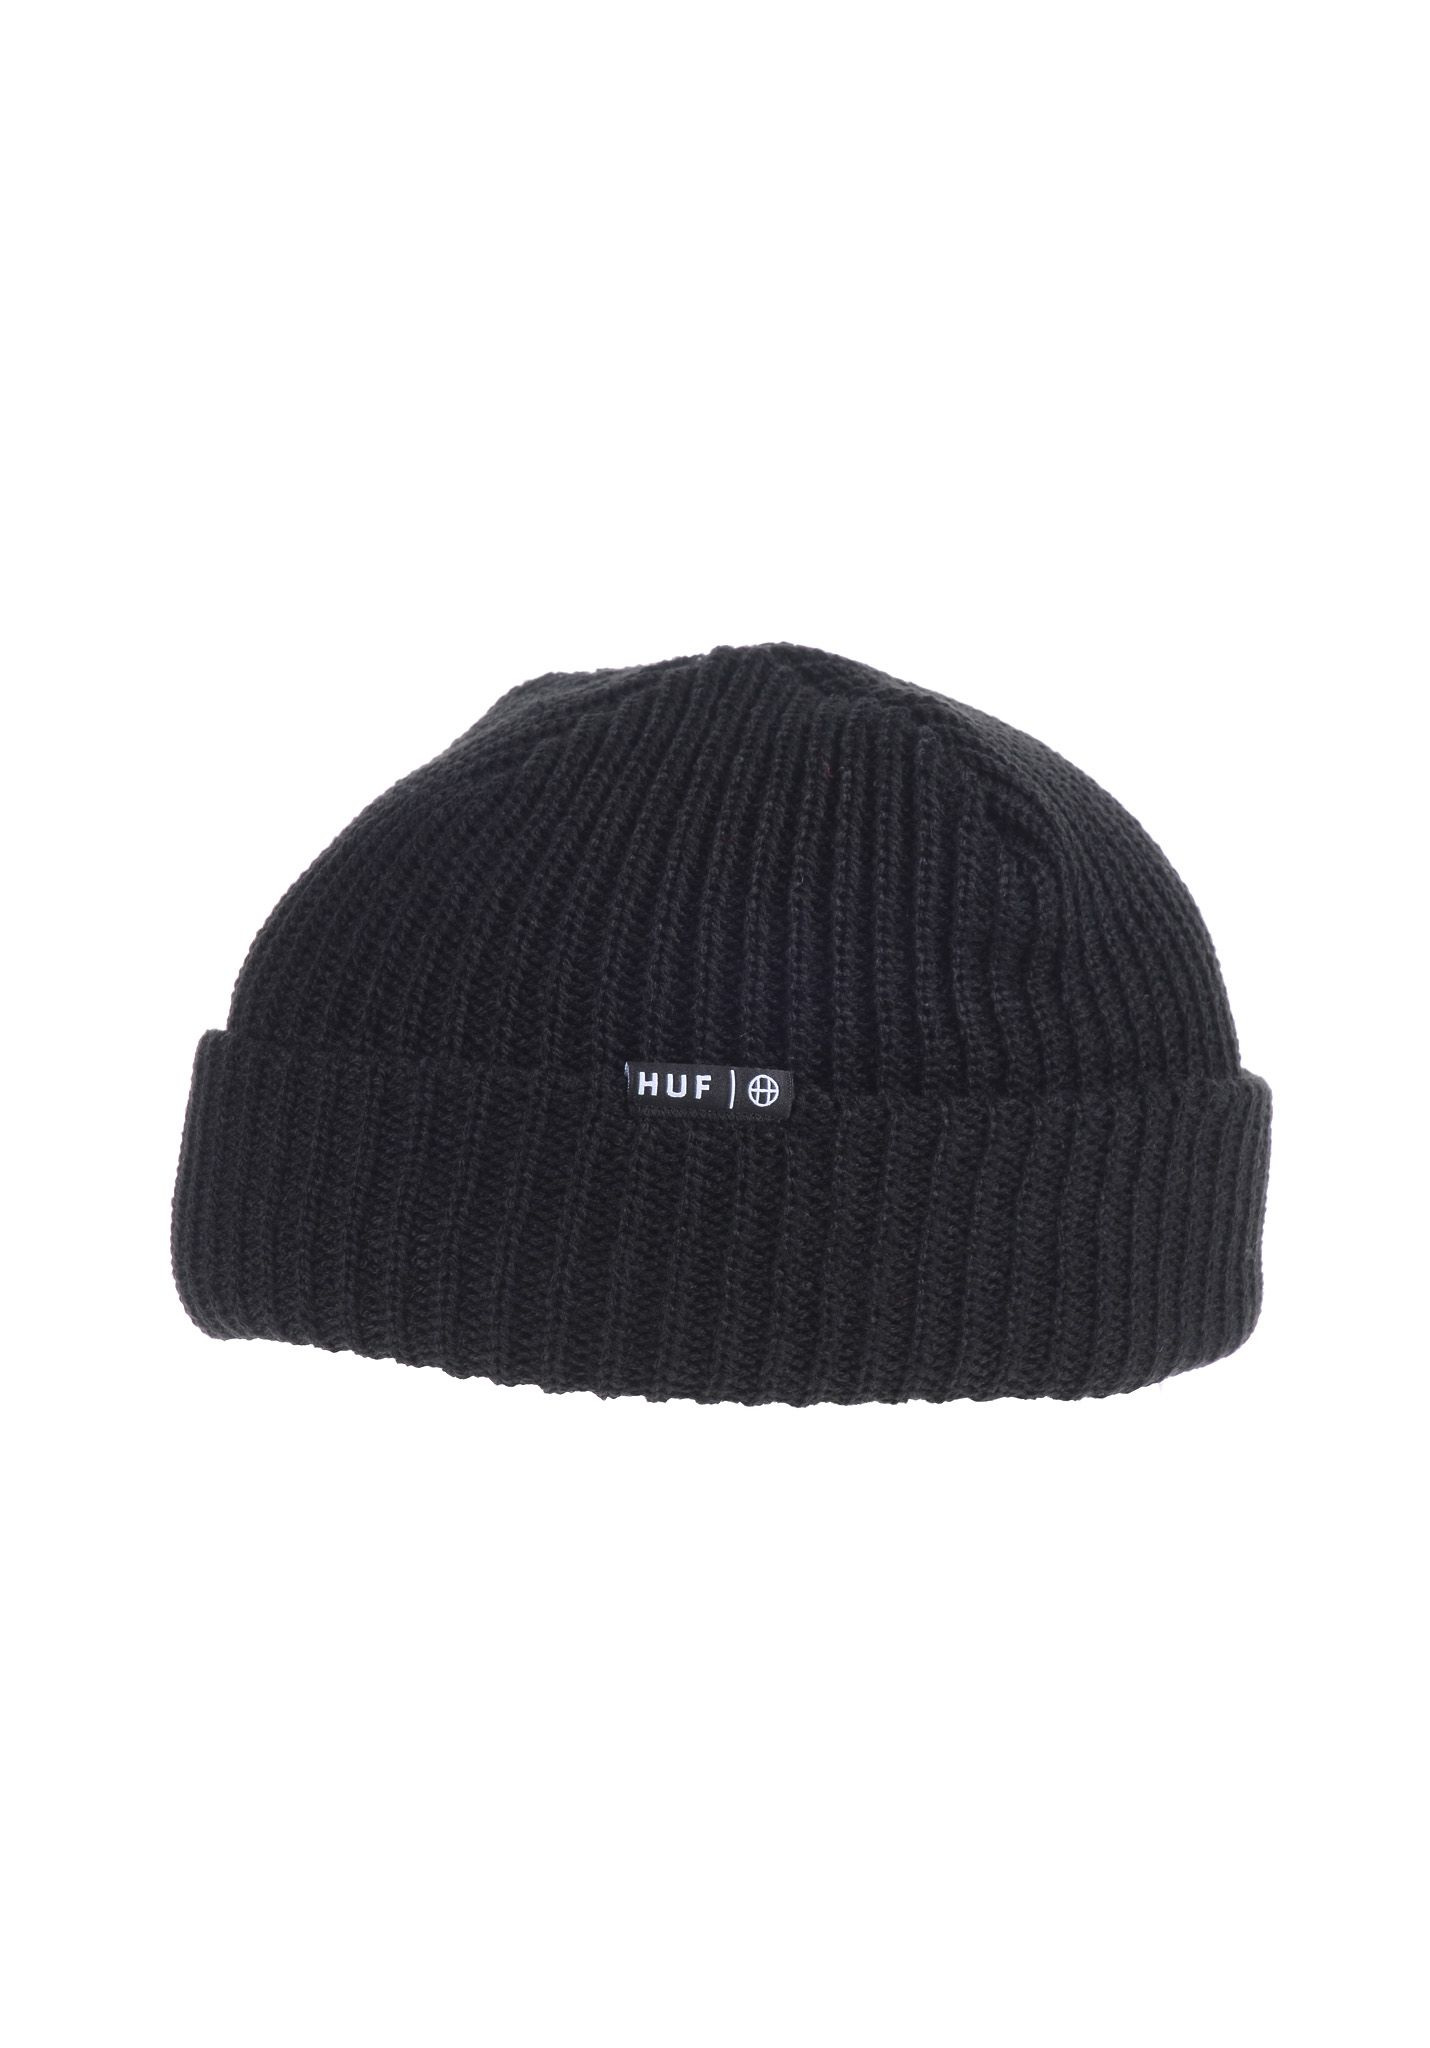 HUF Usual - Beanie for Men - Black - Planet Sports a2c6331db08